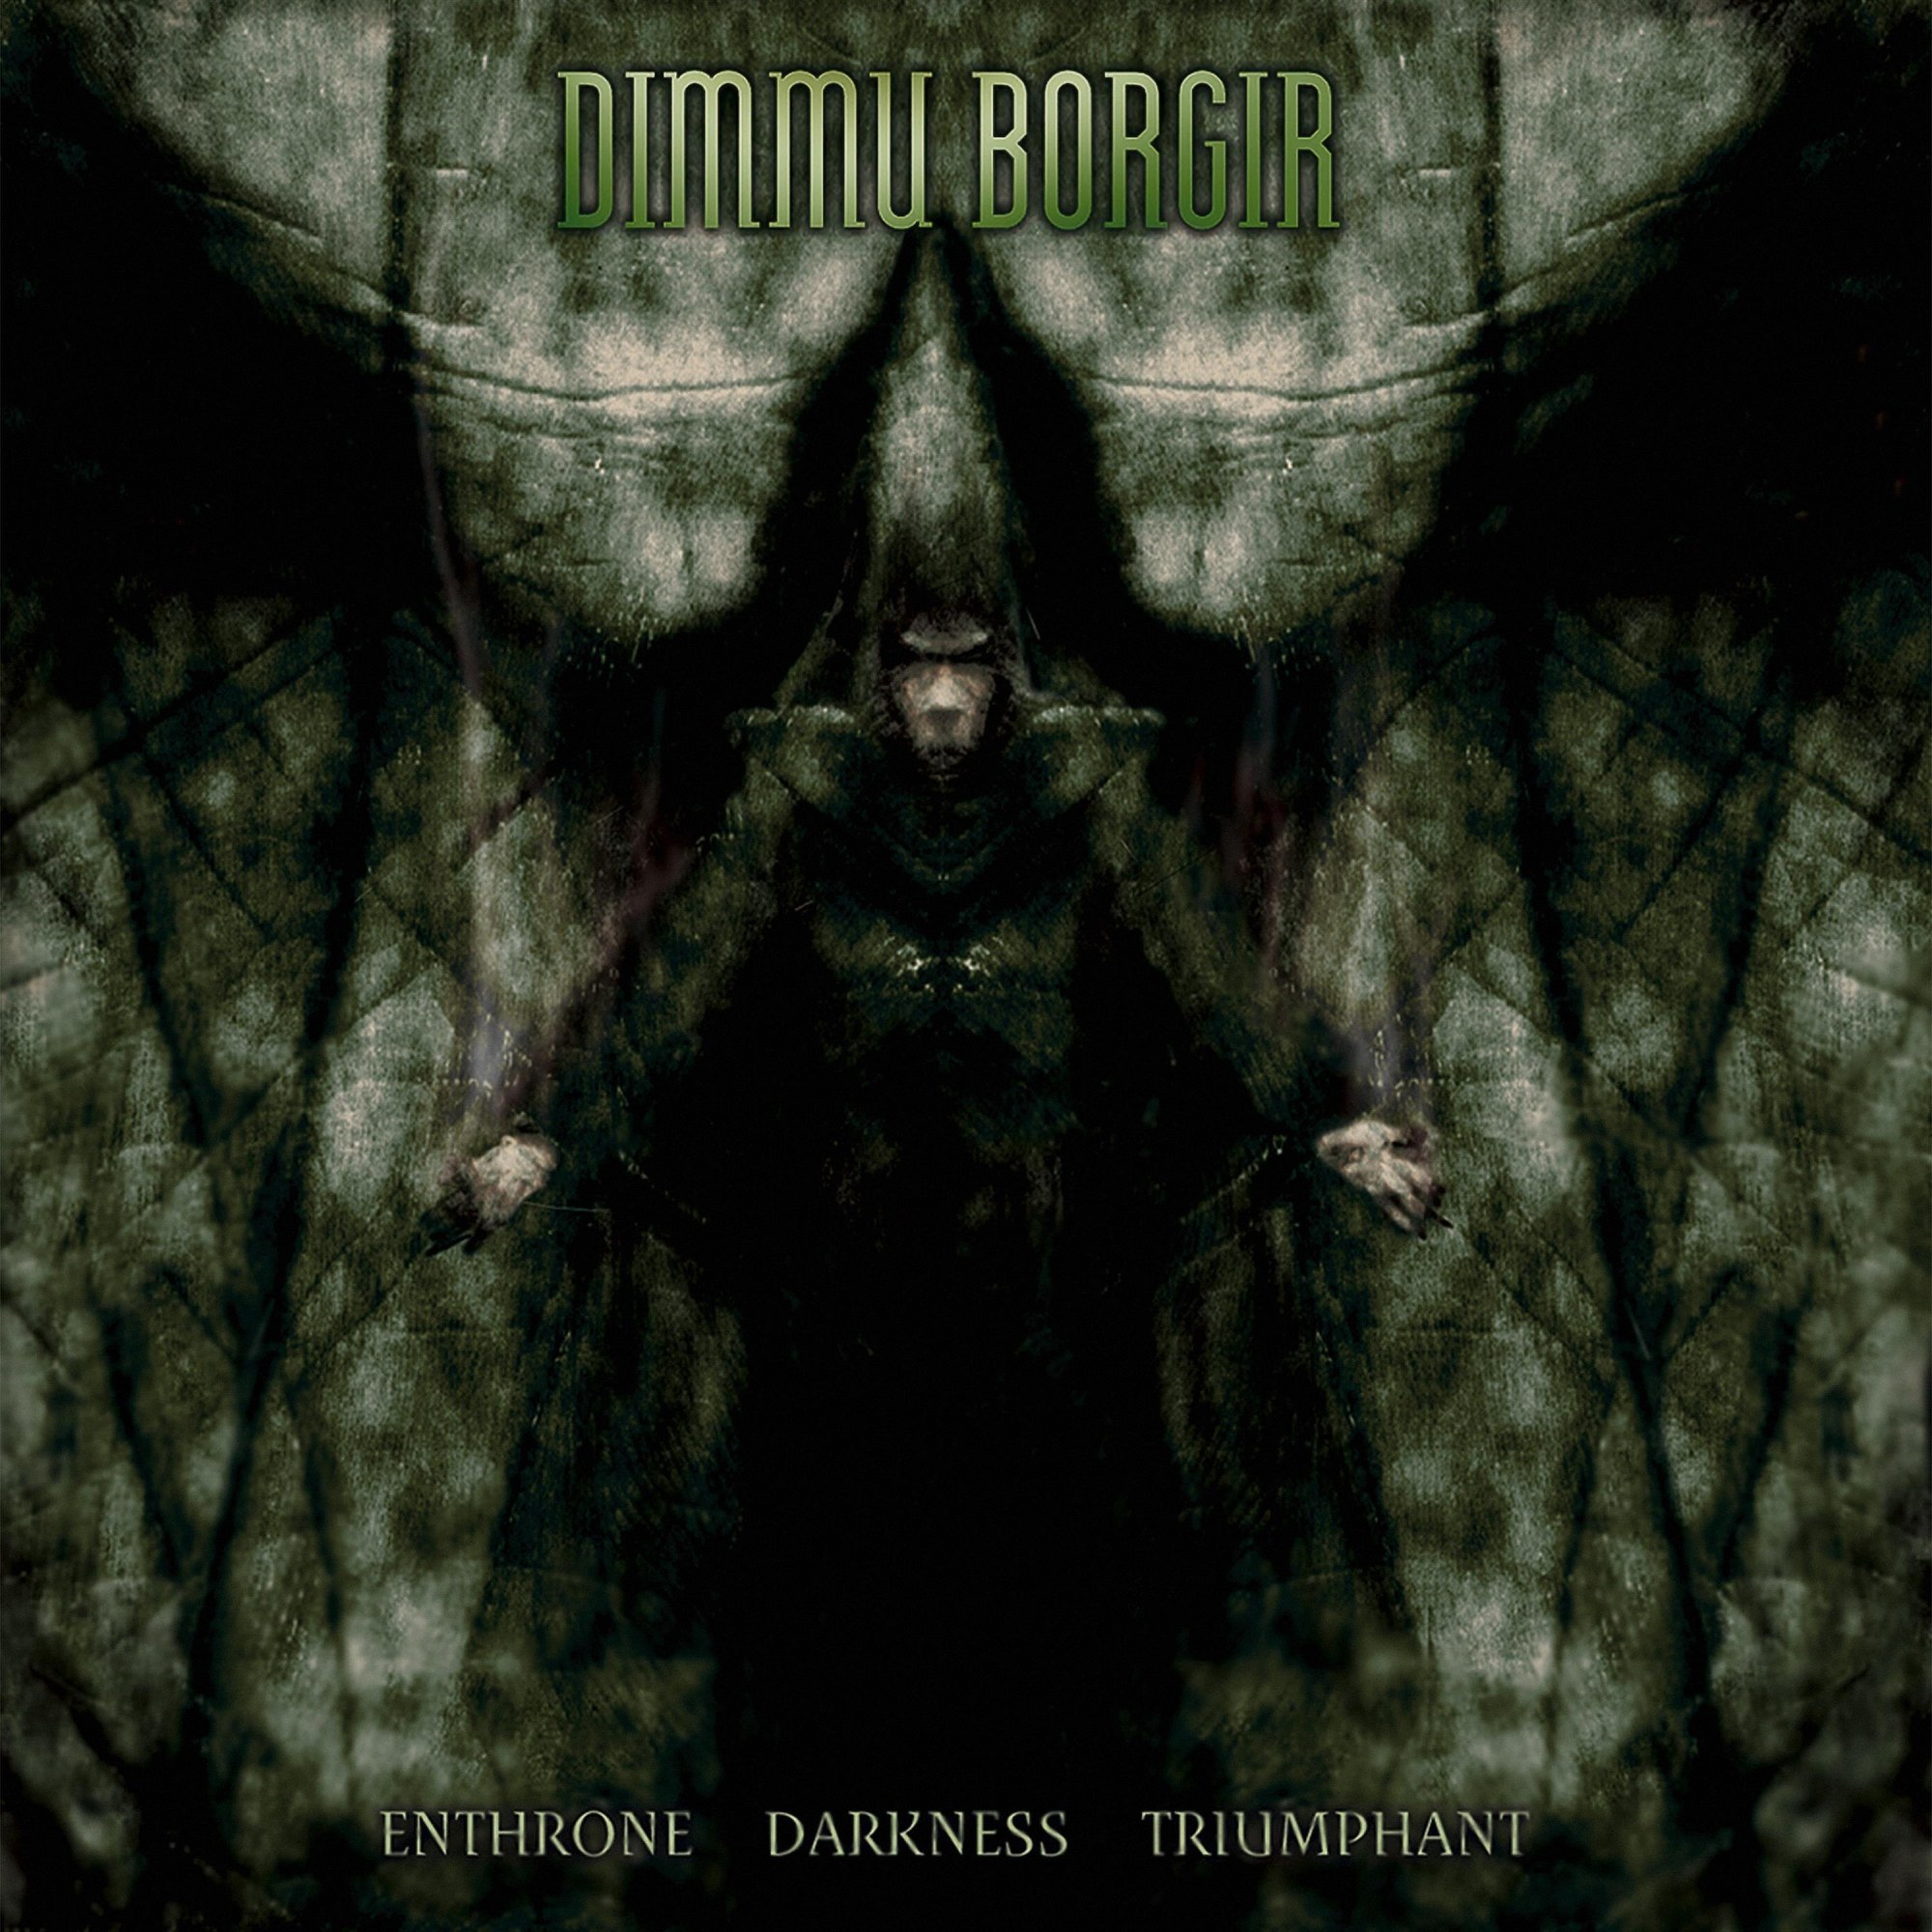 Review for Dimmu Borgir - Enthrone Darkness Triumphant